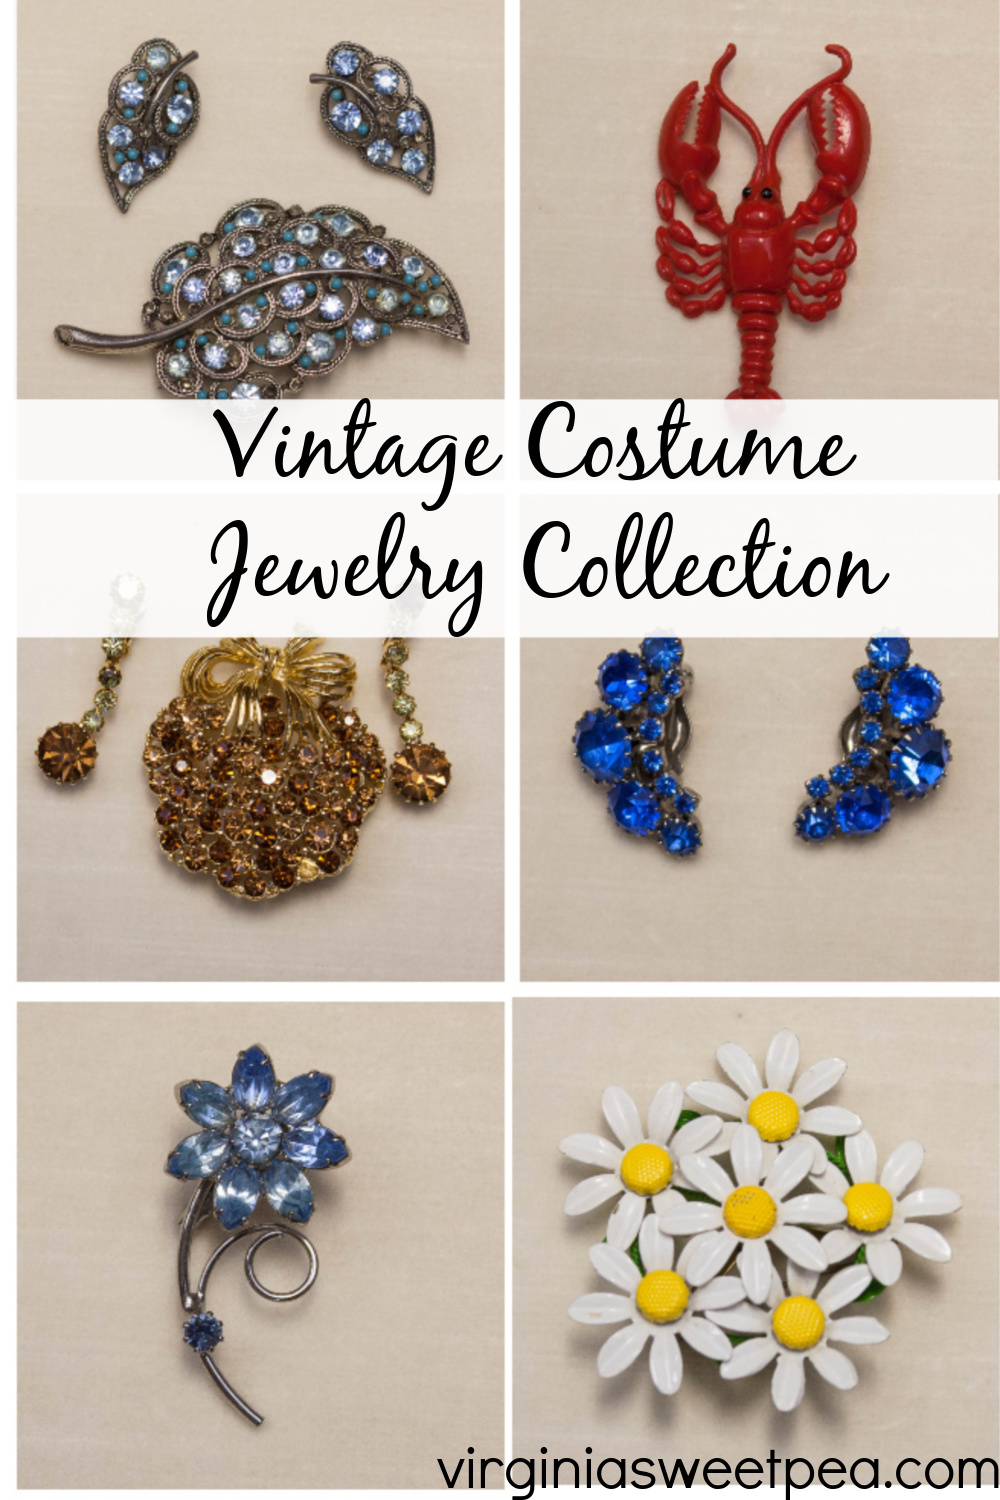 Vintage Costume Jewelry - See a collection of costume jewelry from the 1930s to the 1970s. #vintagejewelry #vintagecostumejewelry via @spaula